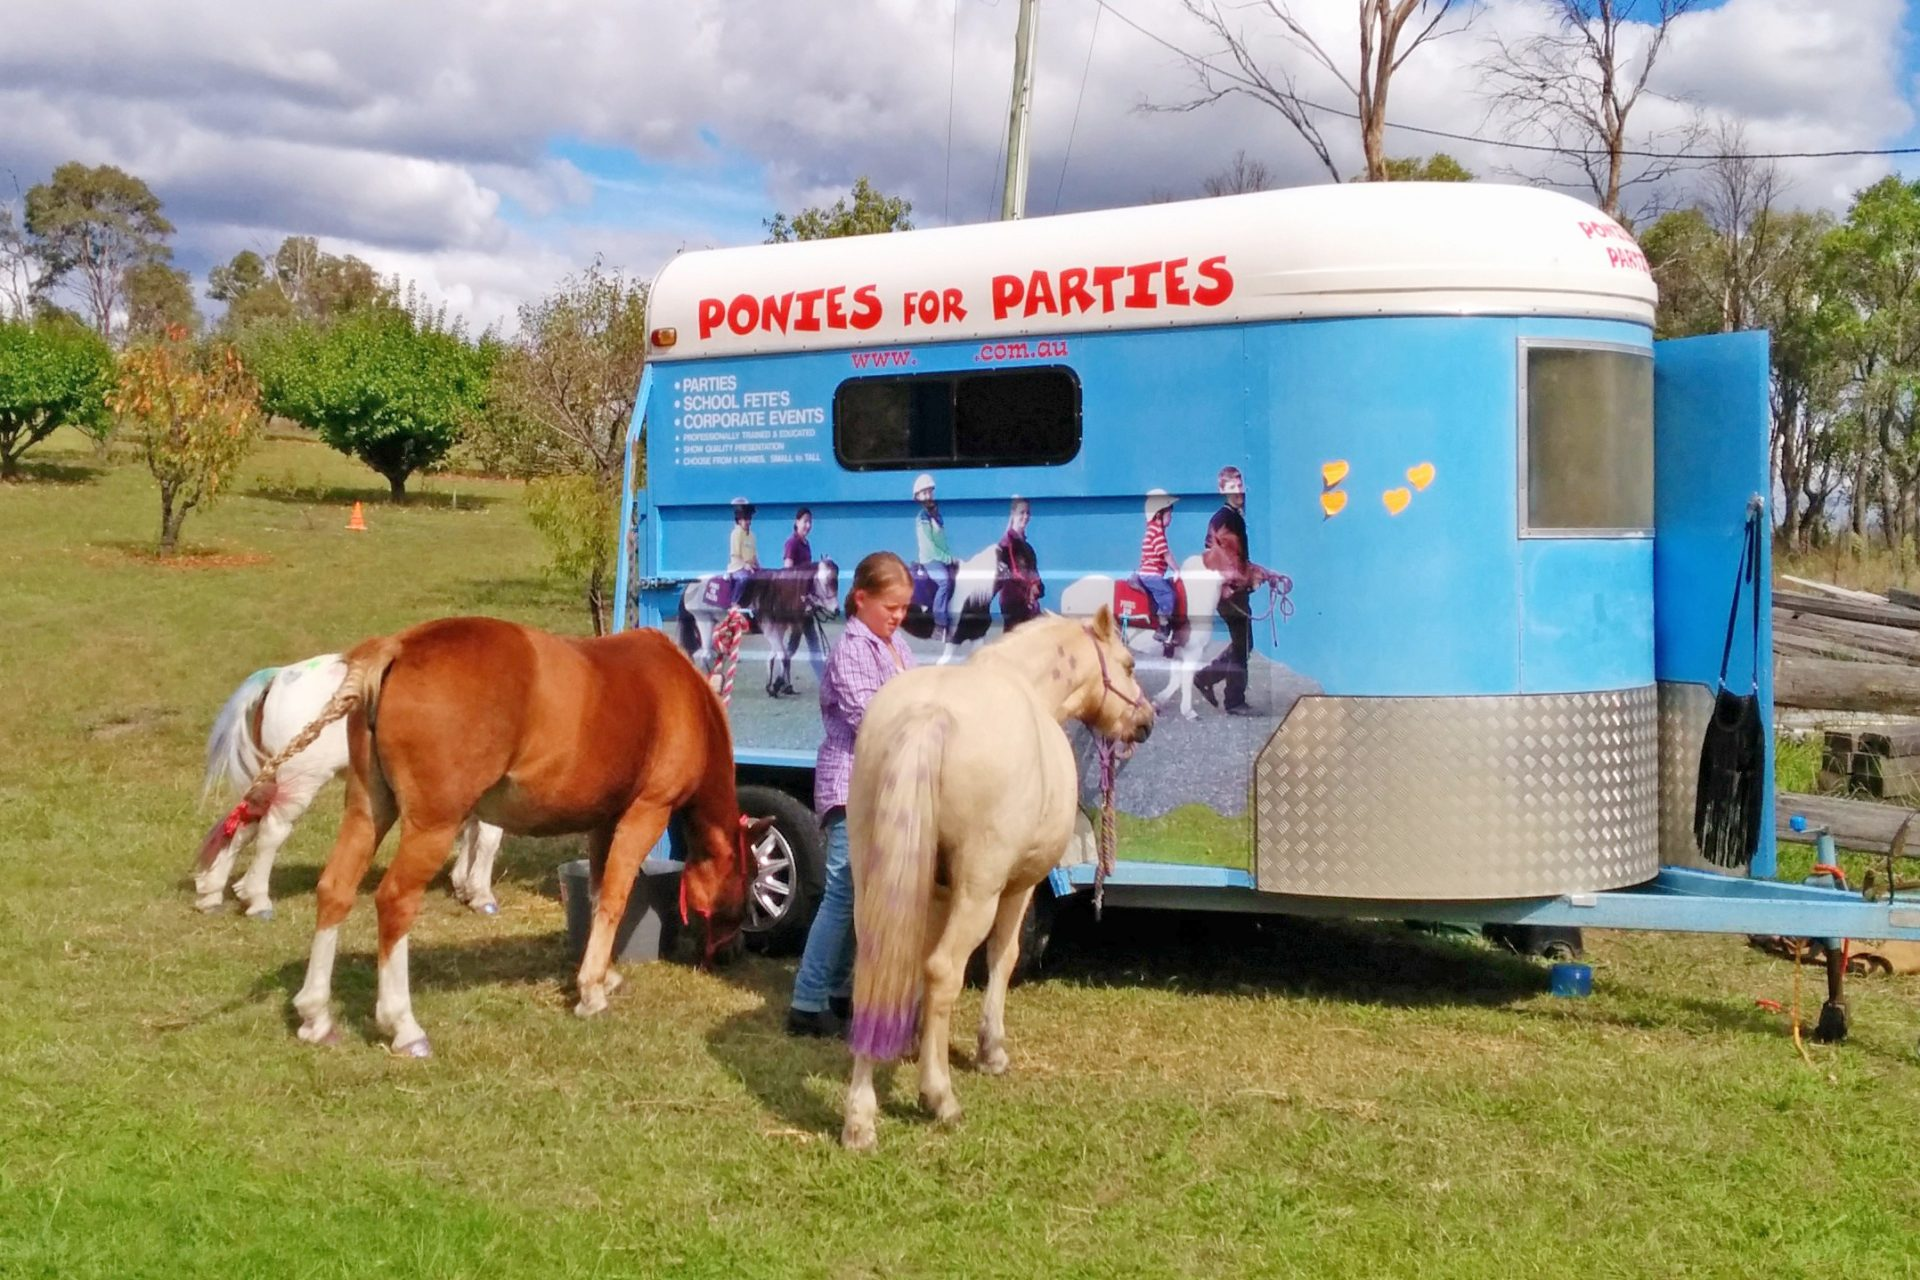 Ponies Getting Ready By The Trailer